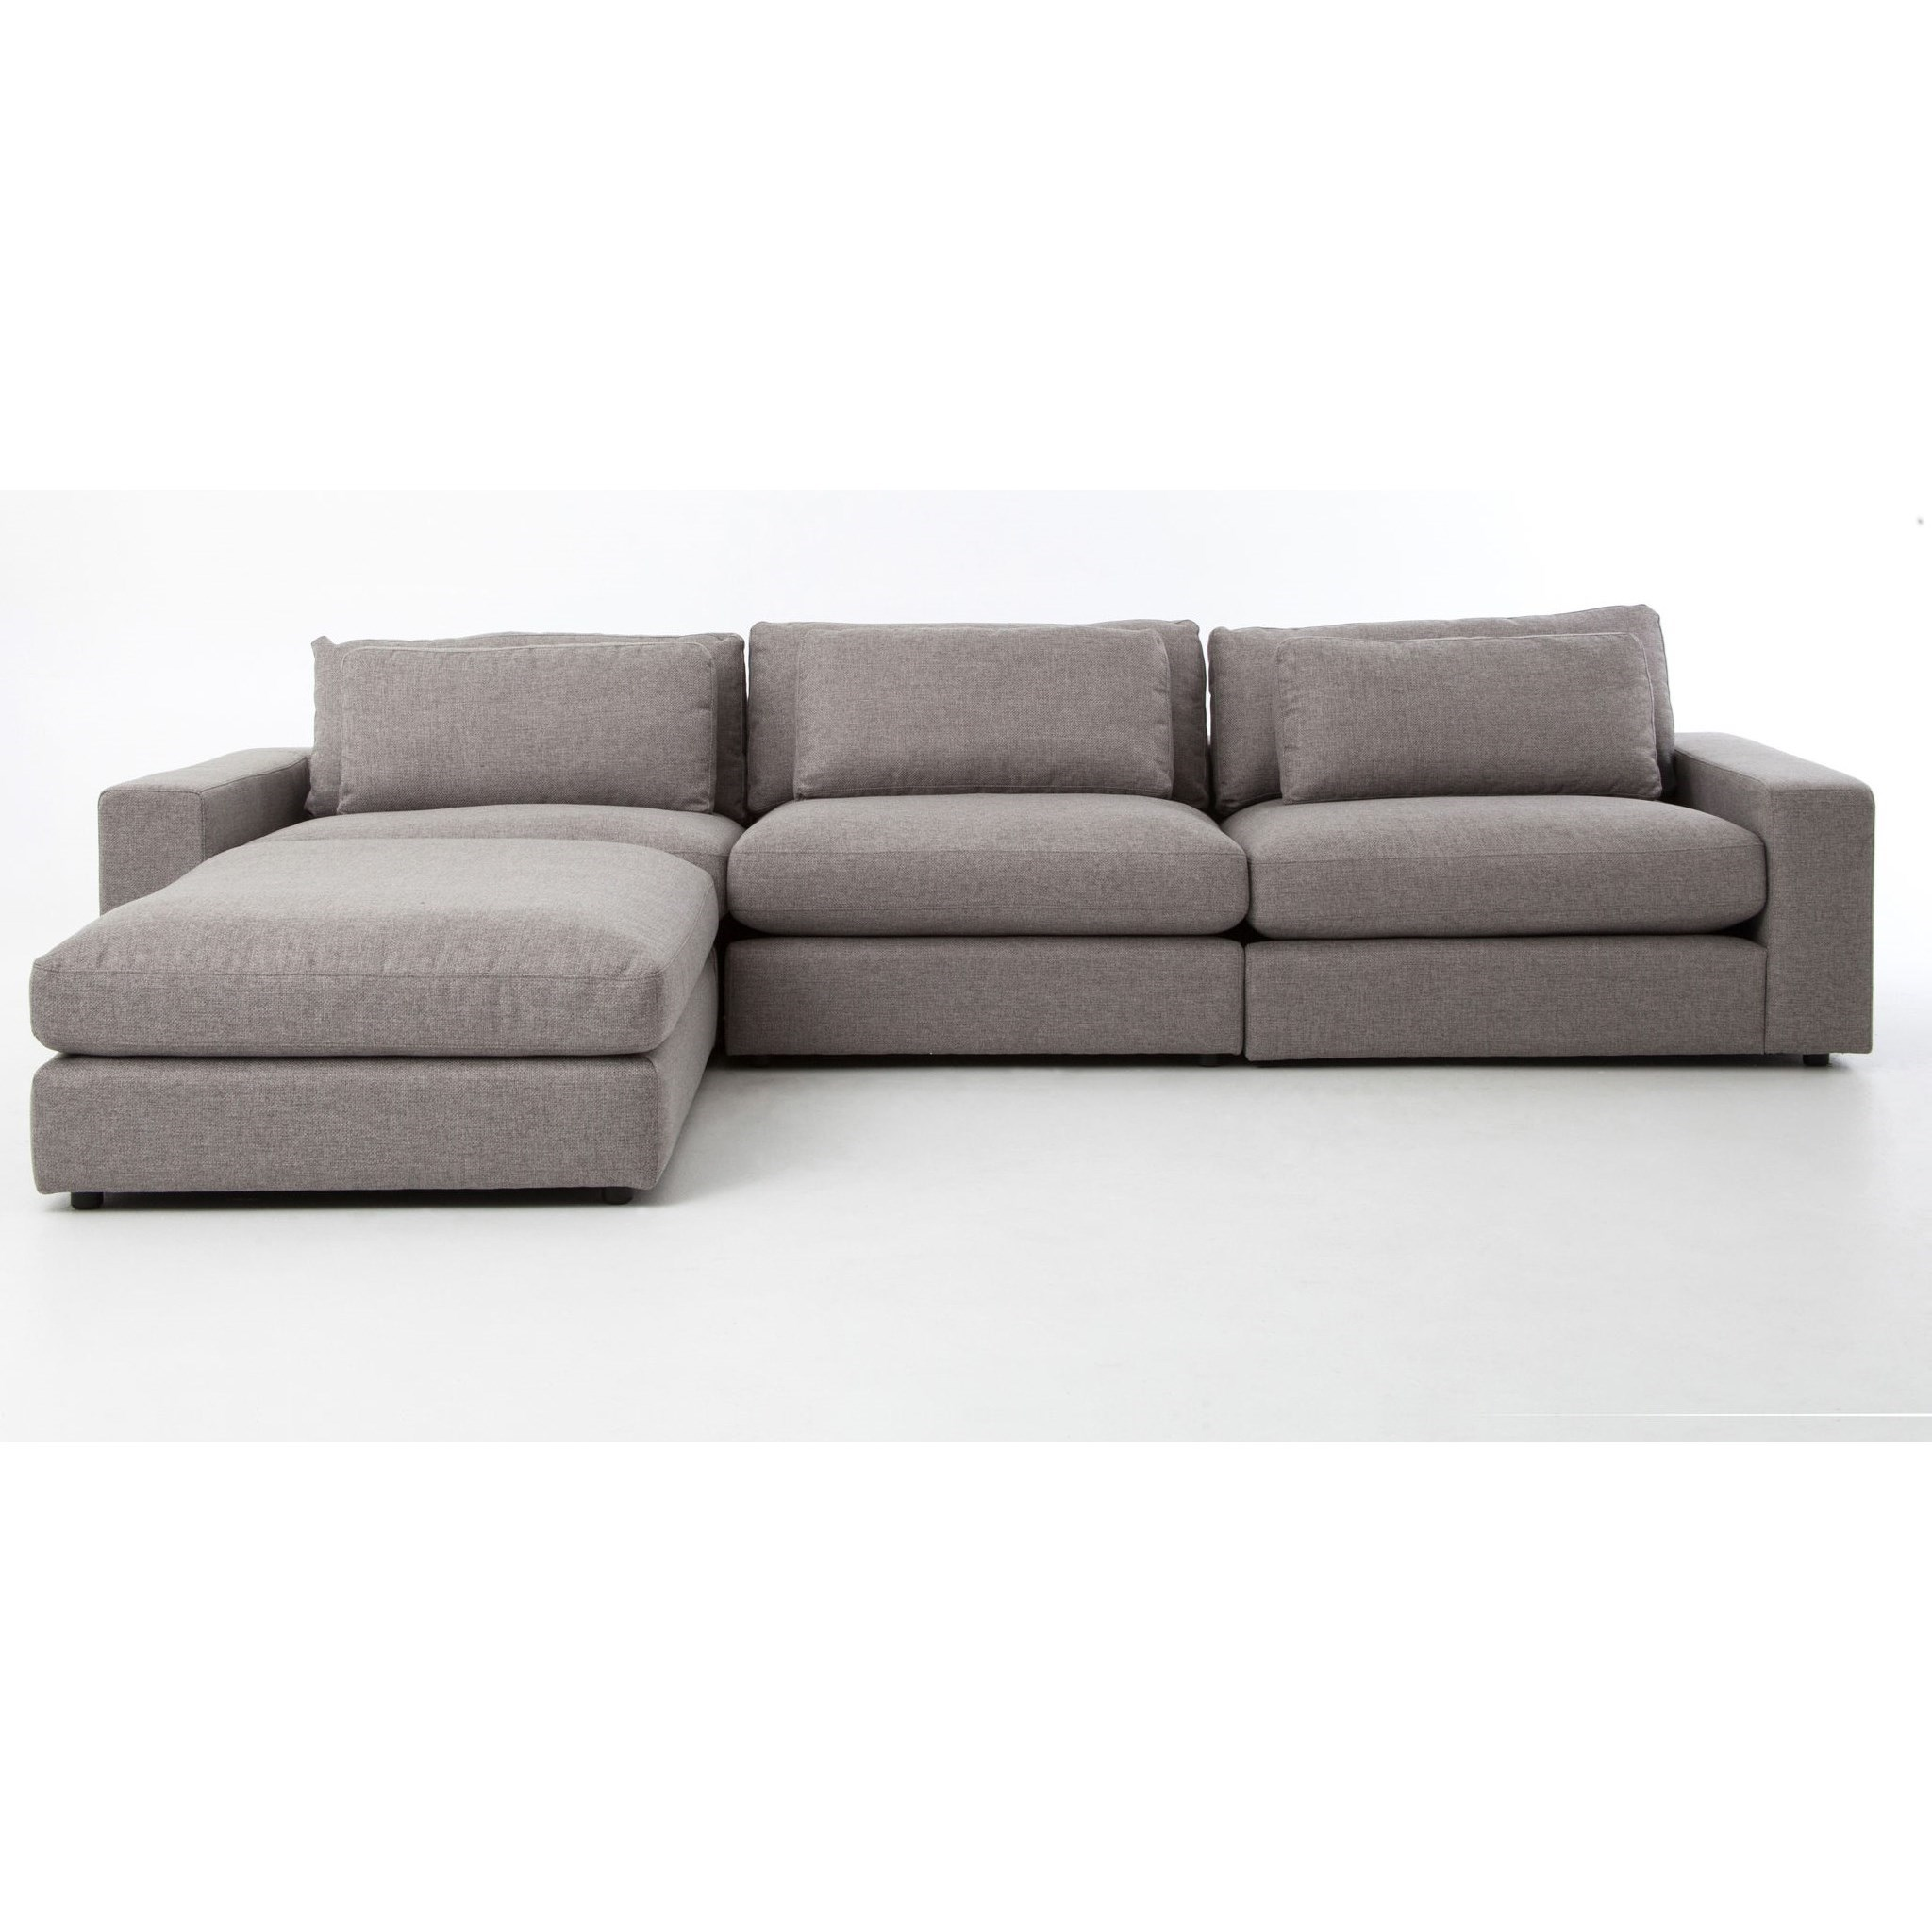 Kensington Bloor Sofa with Ottoman by Four Hands at Alison Craig Home Furnishings